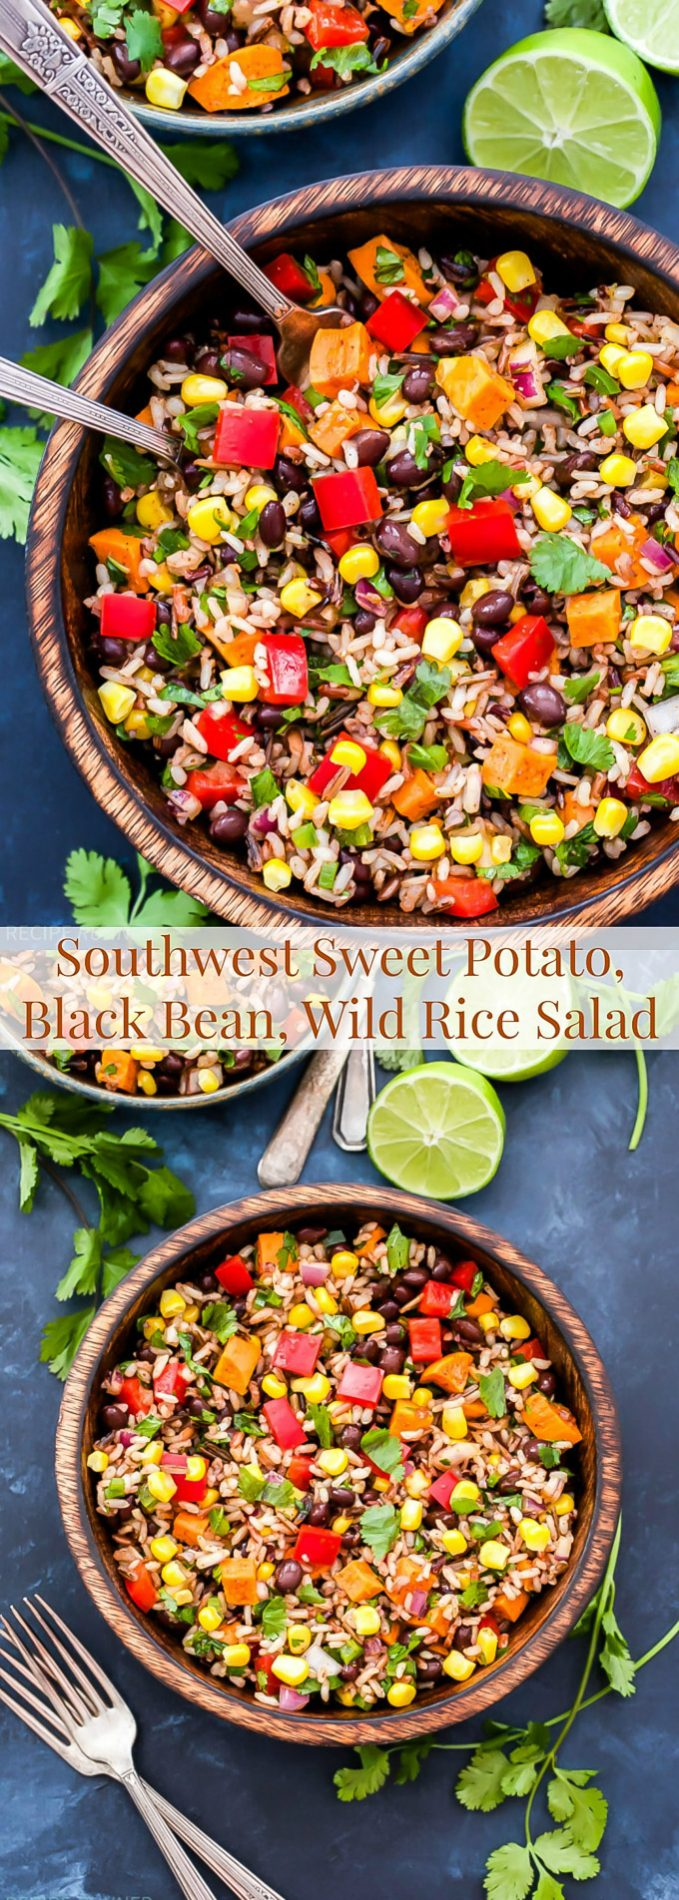 Southwest Sweet Potato, Black Bean, Wild Rice Salad – Recipe Runner